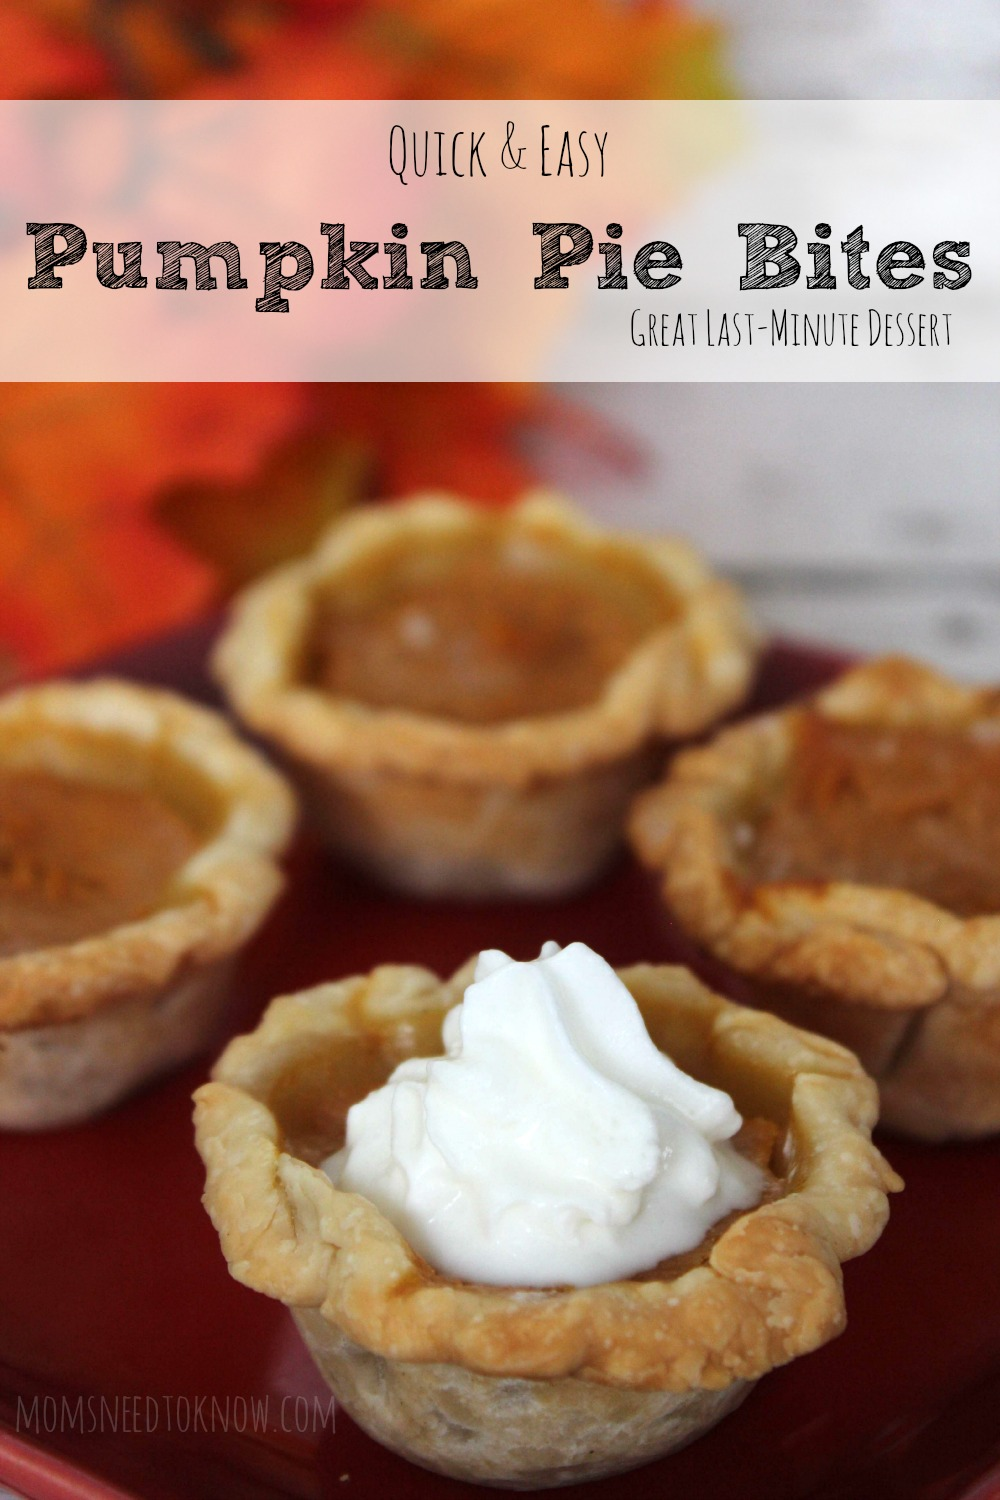 Quick and Easy Pumpkin Pie Bites